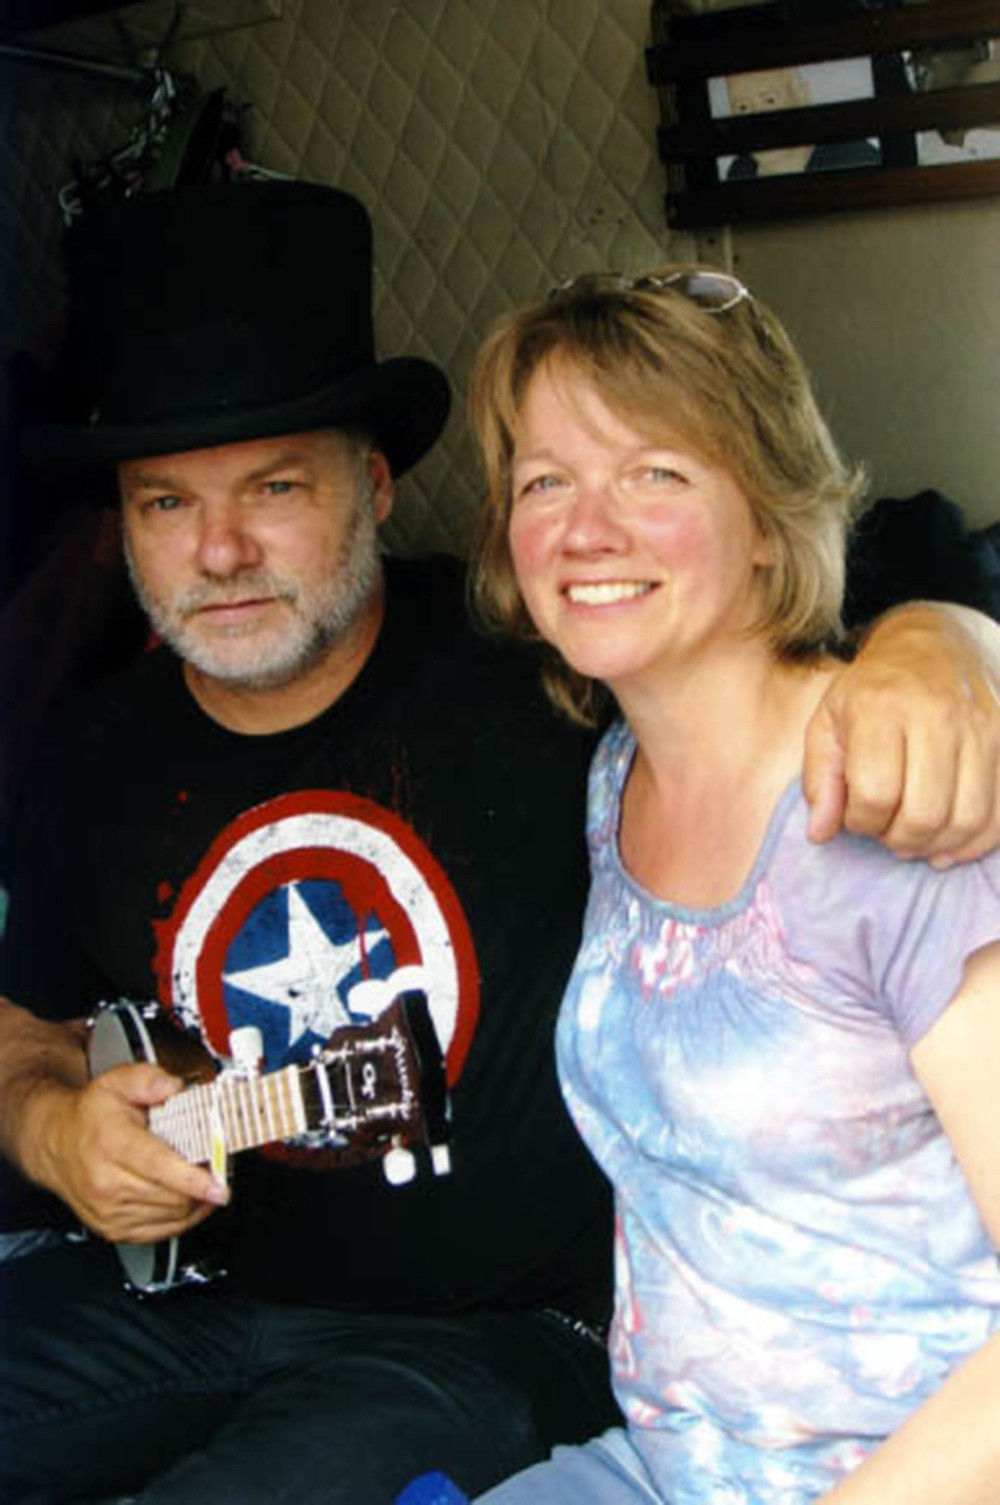 2010 - Fred Eaglesmith with Edmonton based recording artist Cathy Kowalski